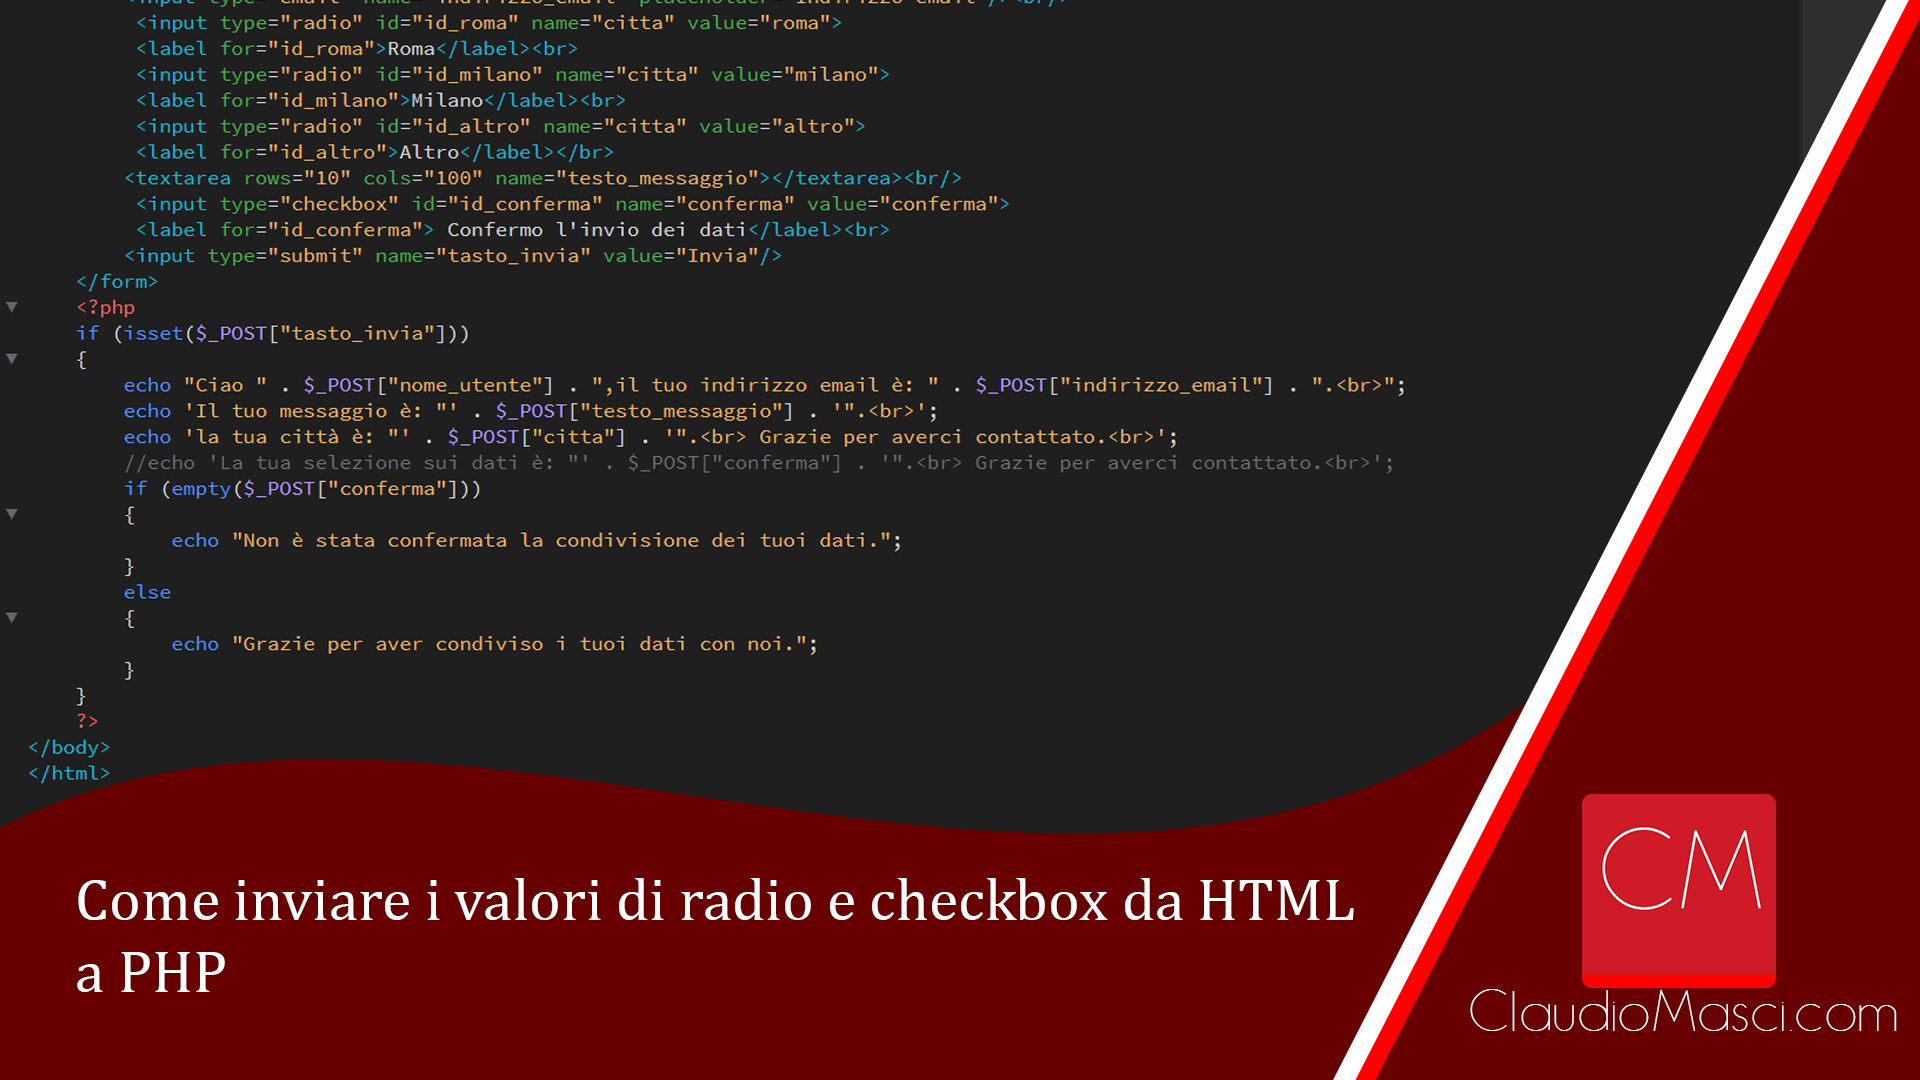 Come inviare i valori di radio e checkbox da html a php